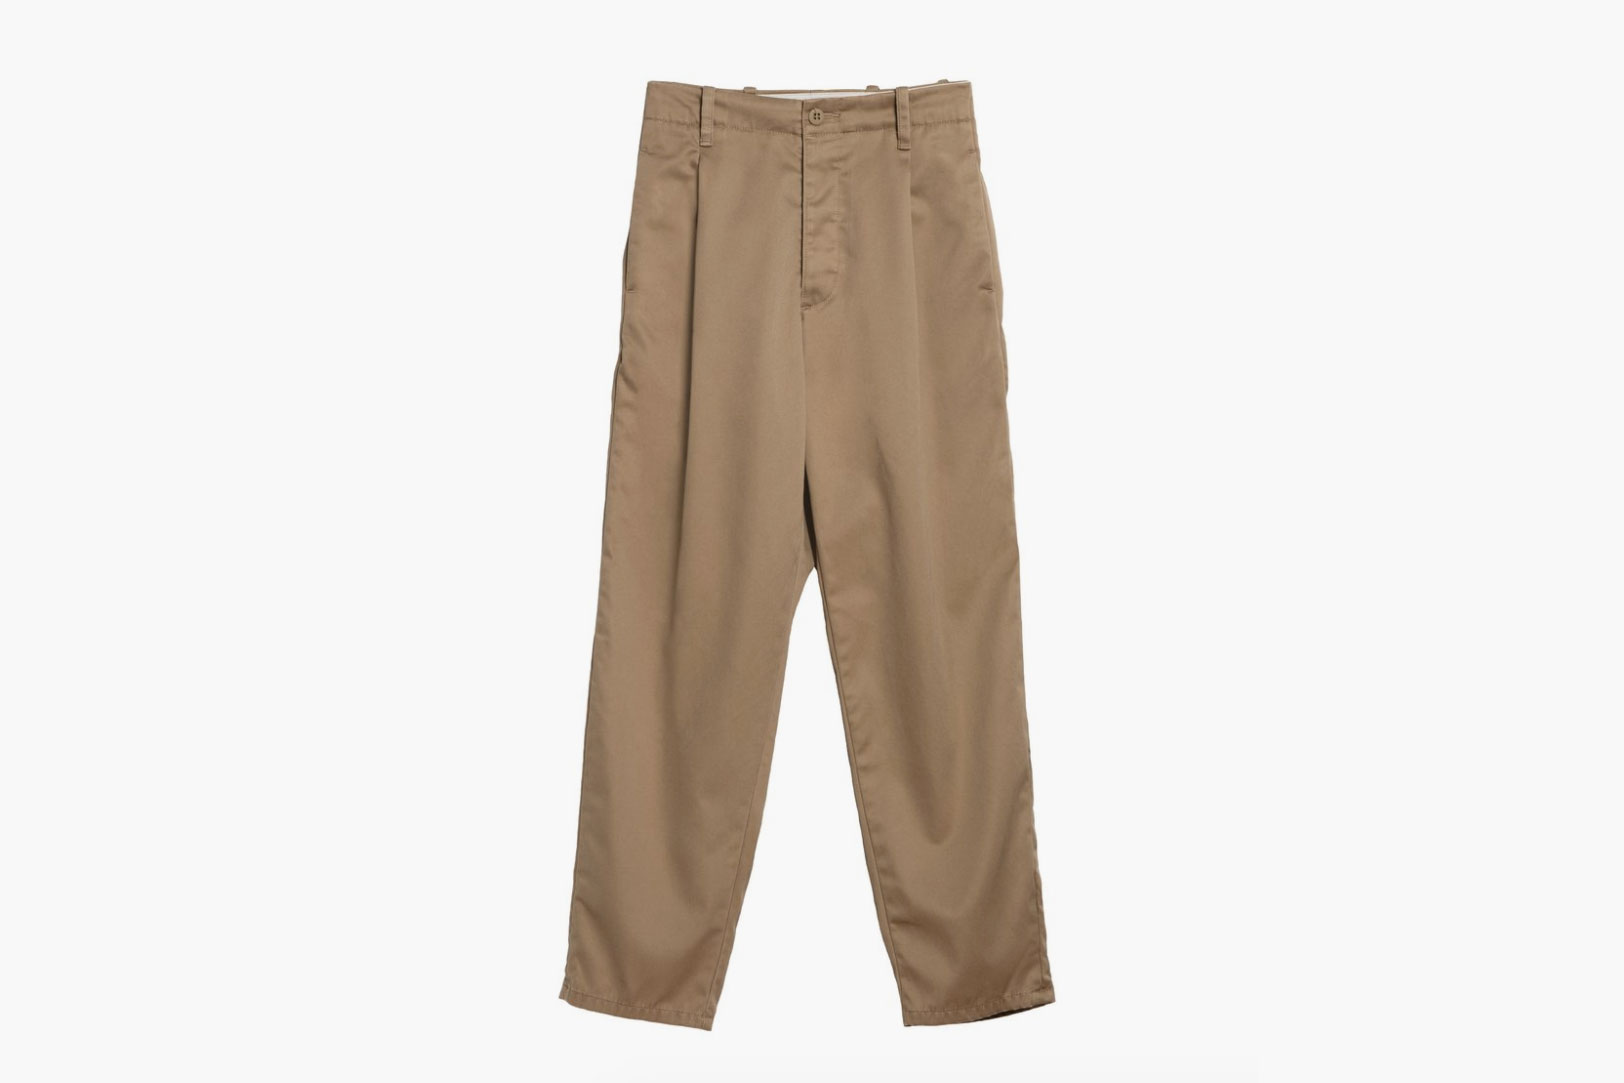 Dockers x Karla Tapered Pant